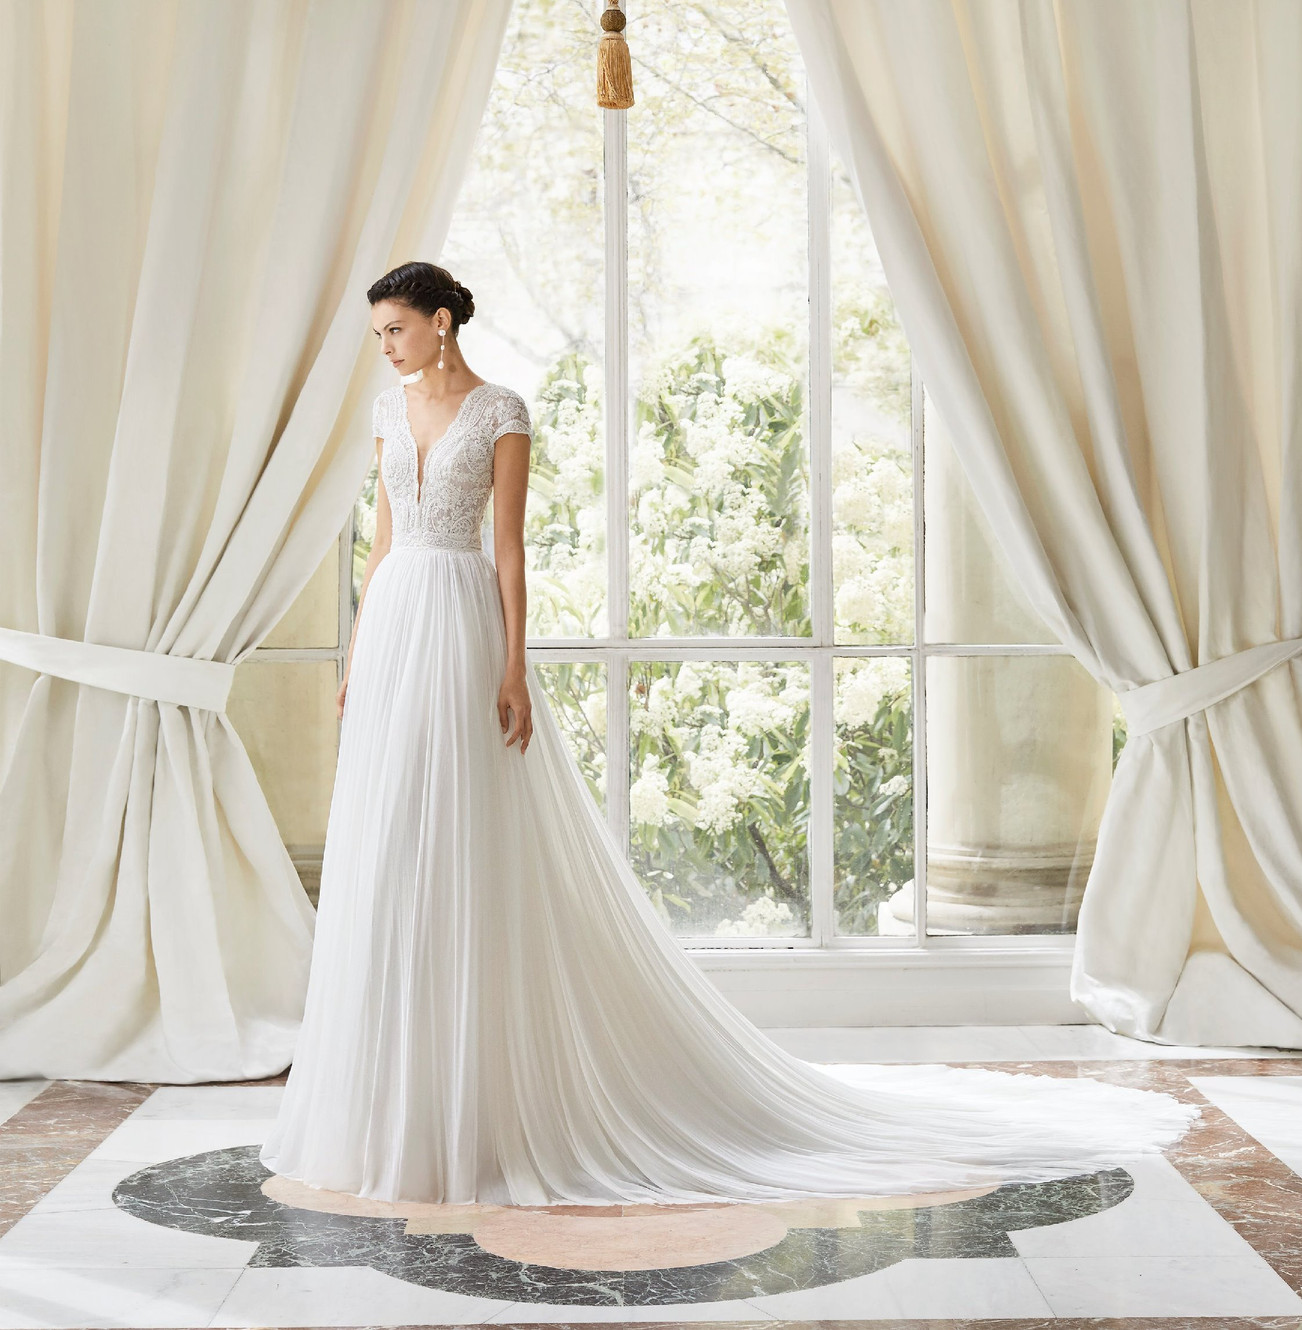 Wedding Gown Boutique: May & Grace Bridal Boutique